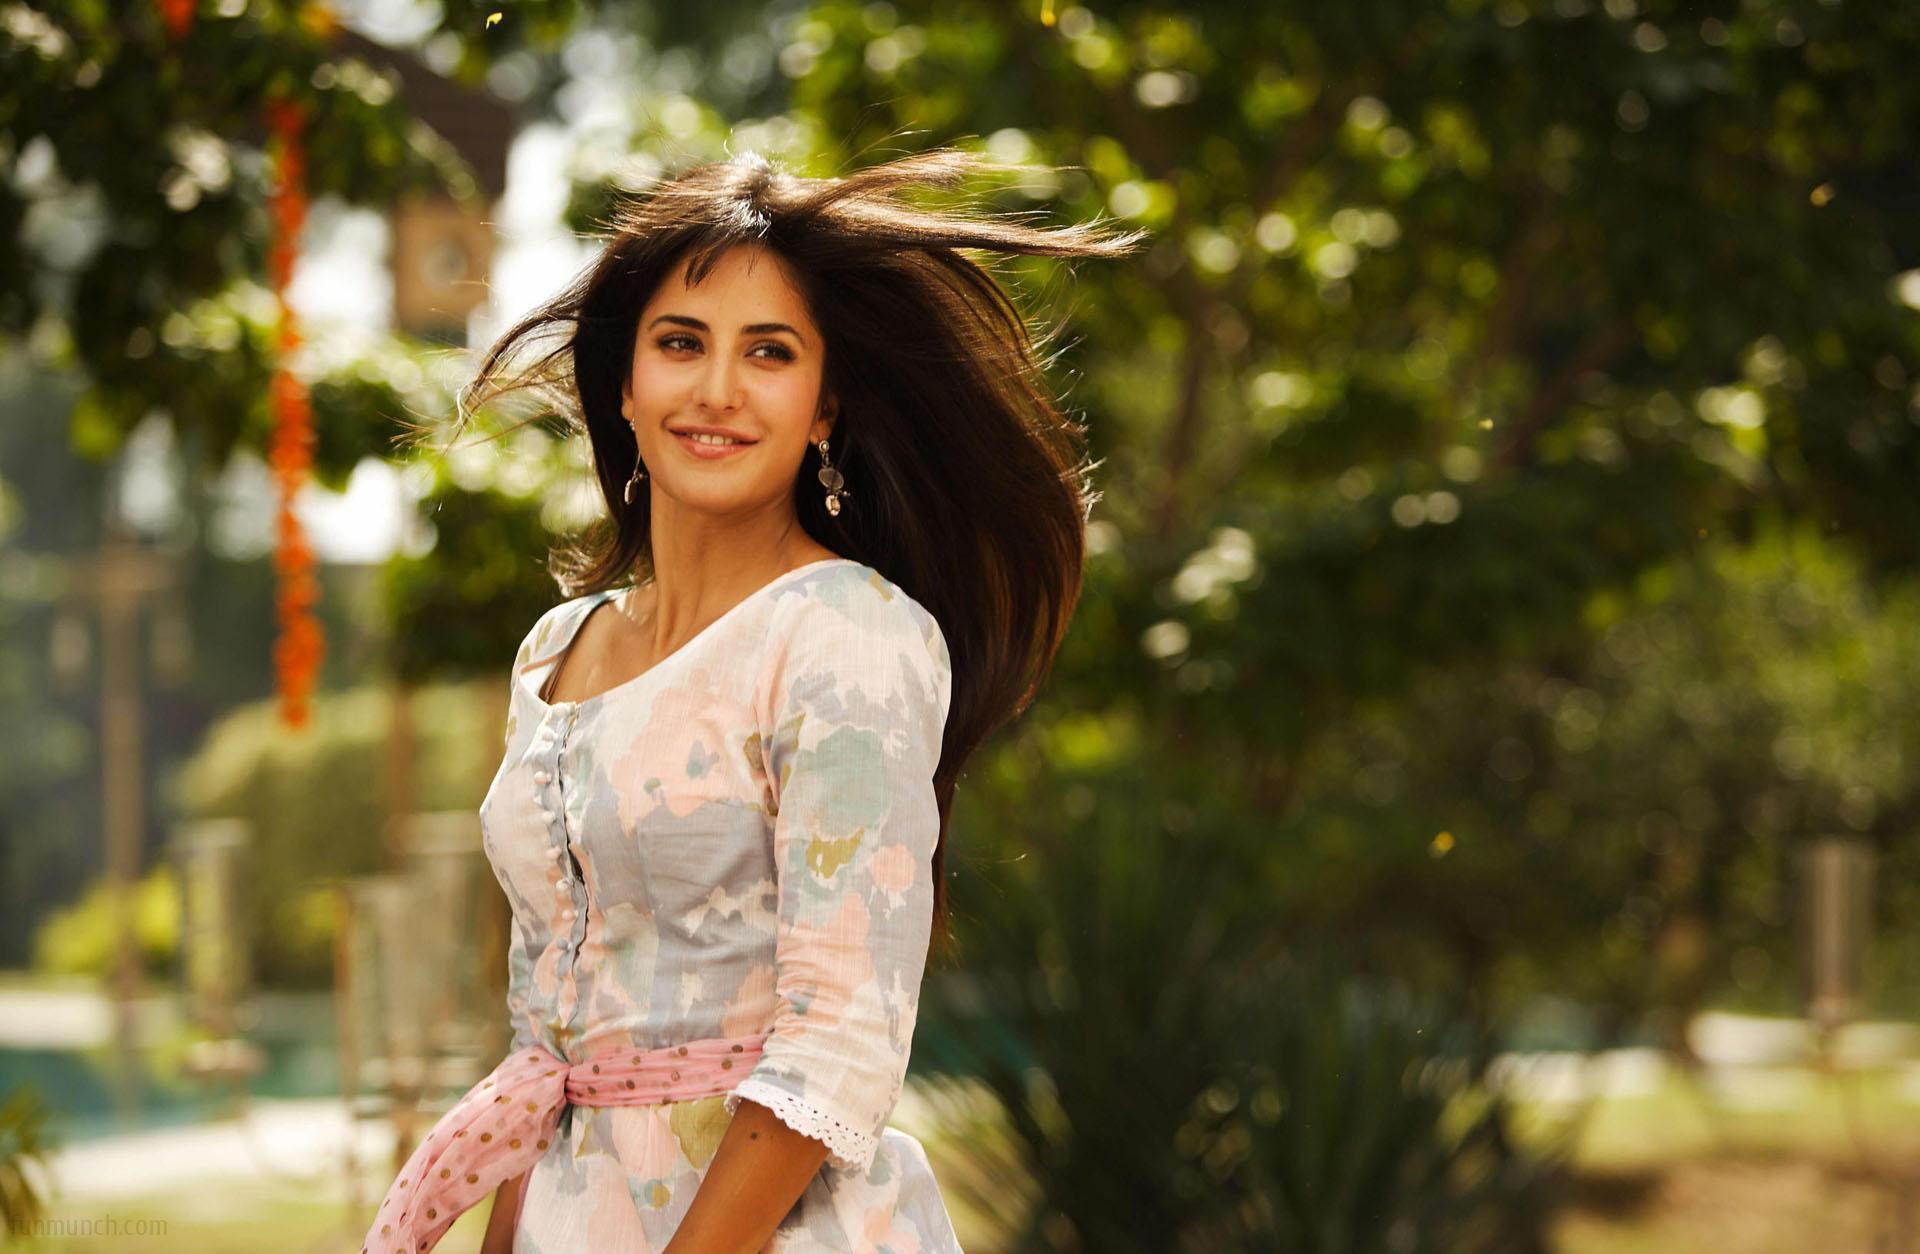 Dulhan Ka Pose Hd 1280: Katrina Kaif HD Wallpapers [49-60] • PoPoPics.com